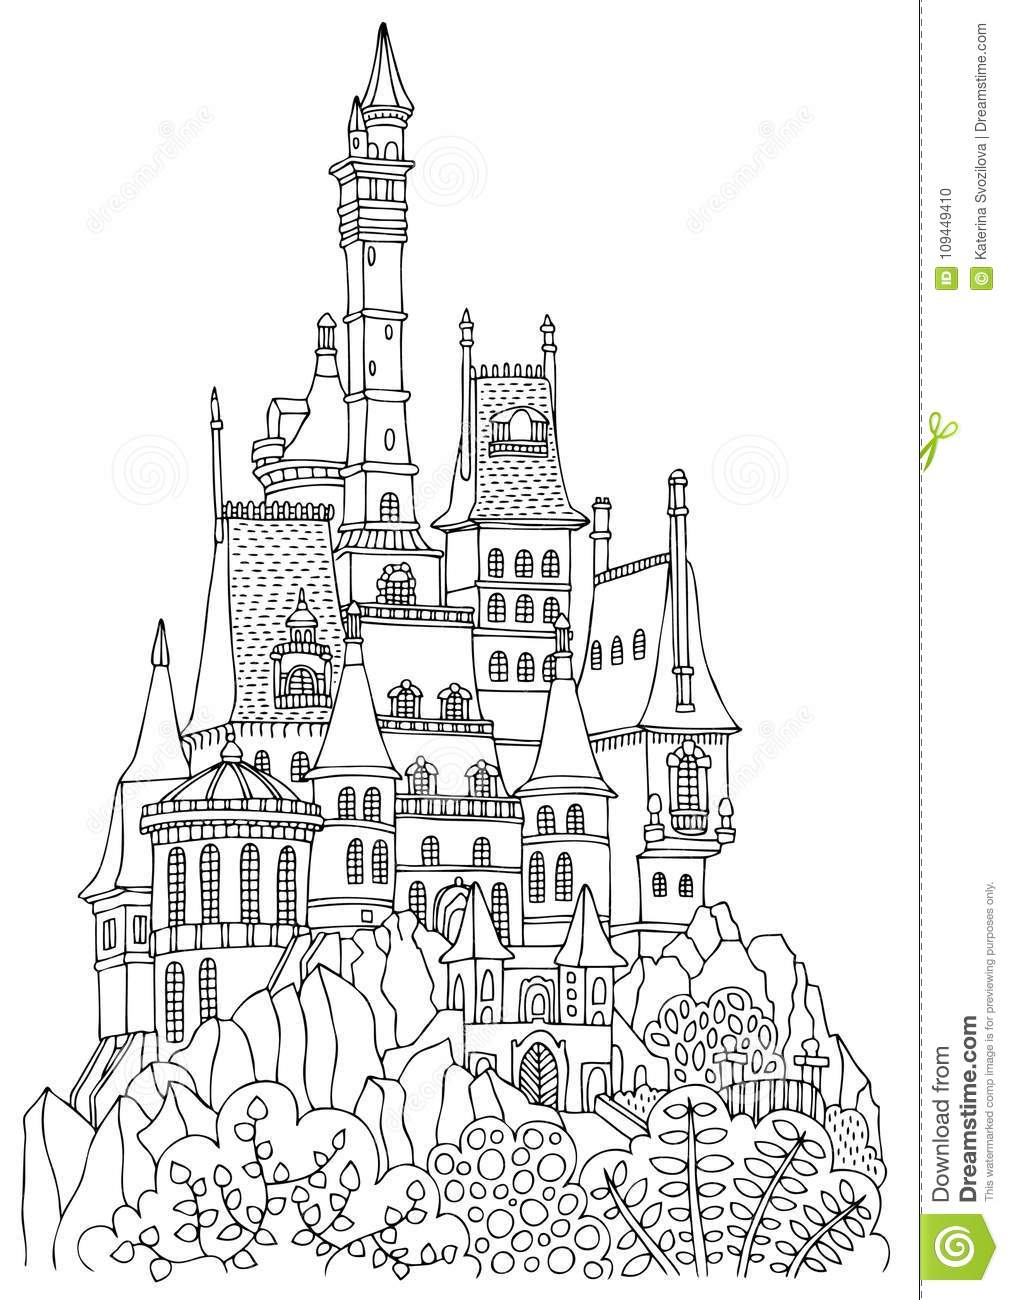 An old castle with many towers.